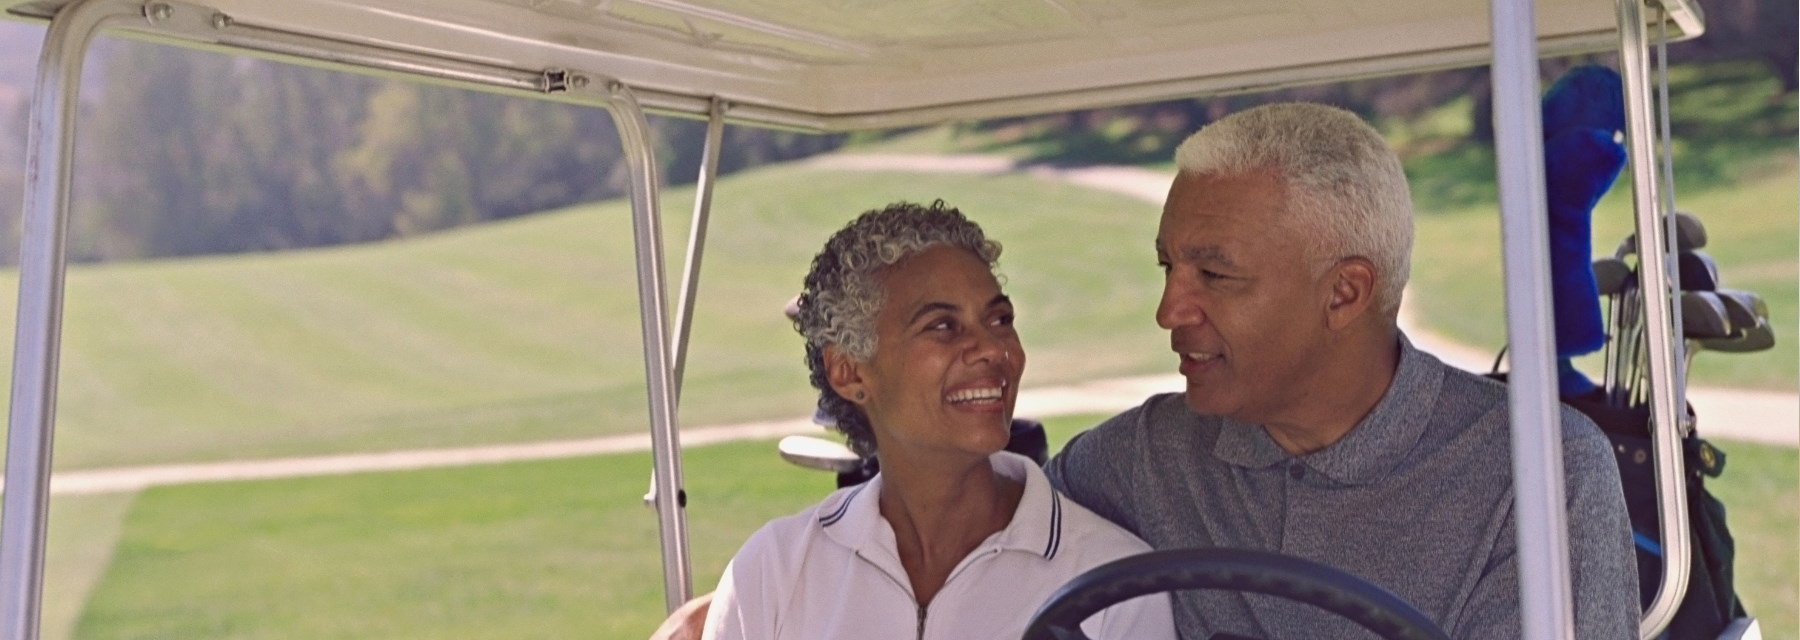 elderly couple sitting in golf cart